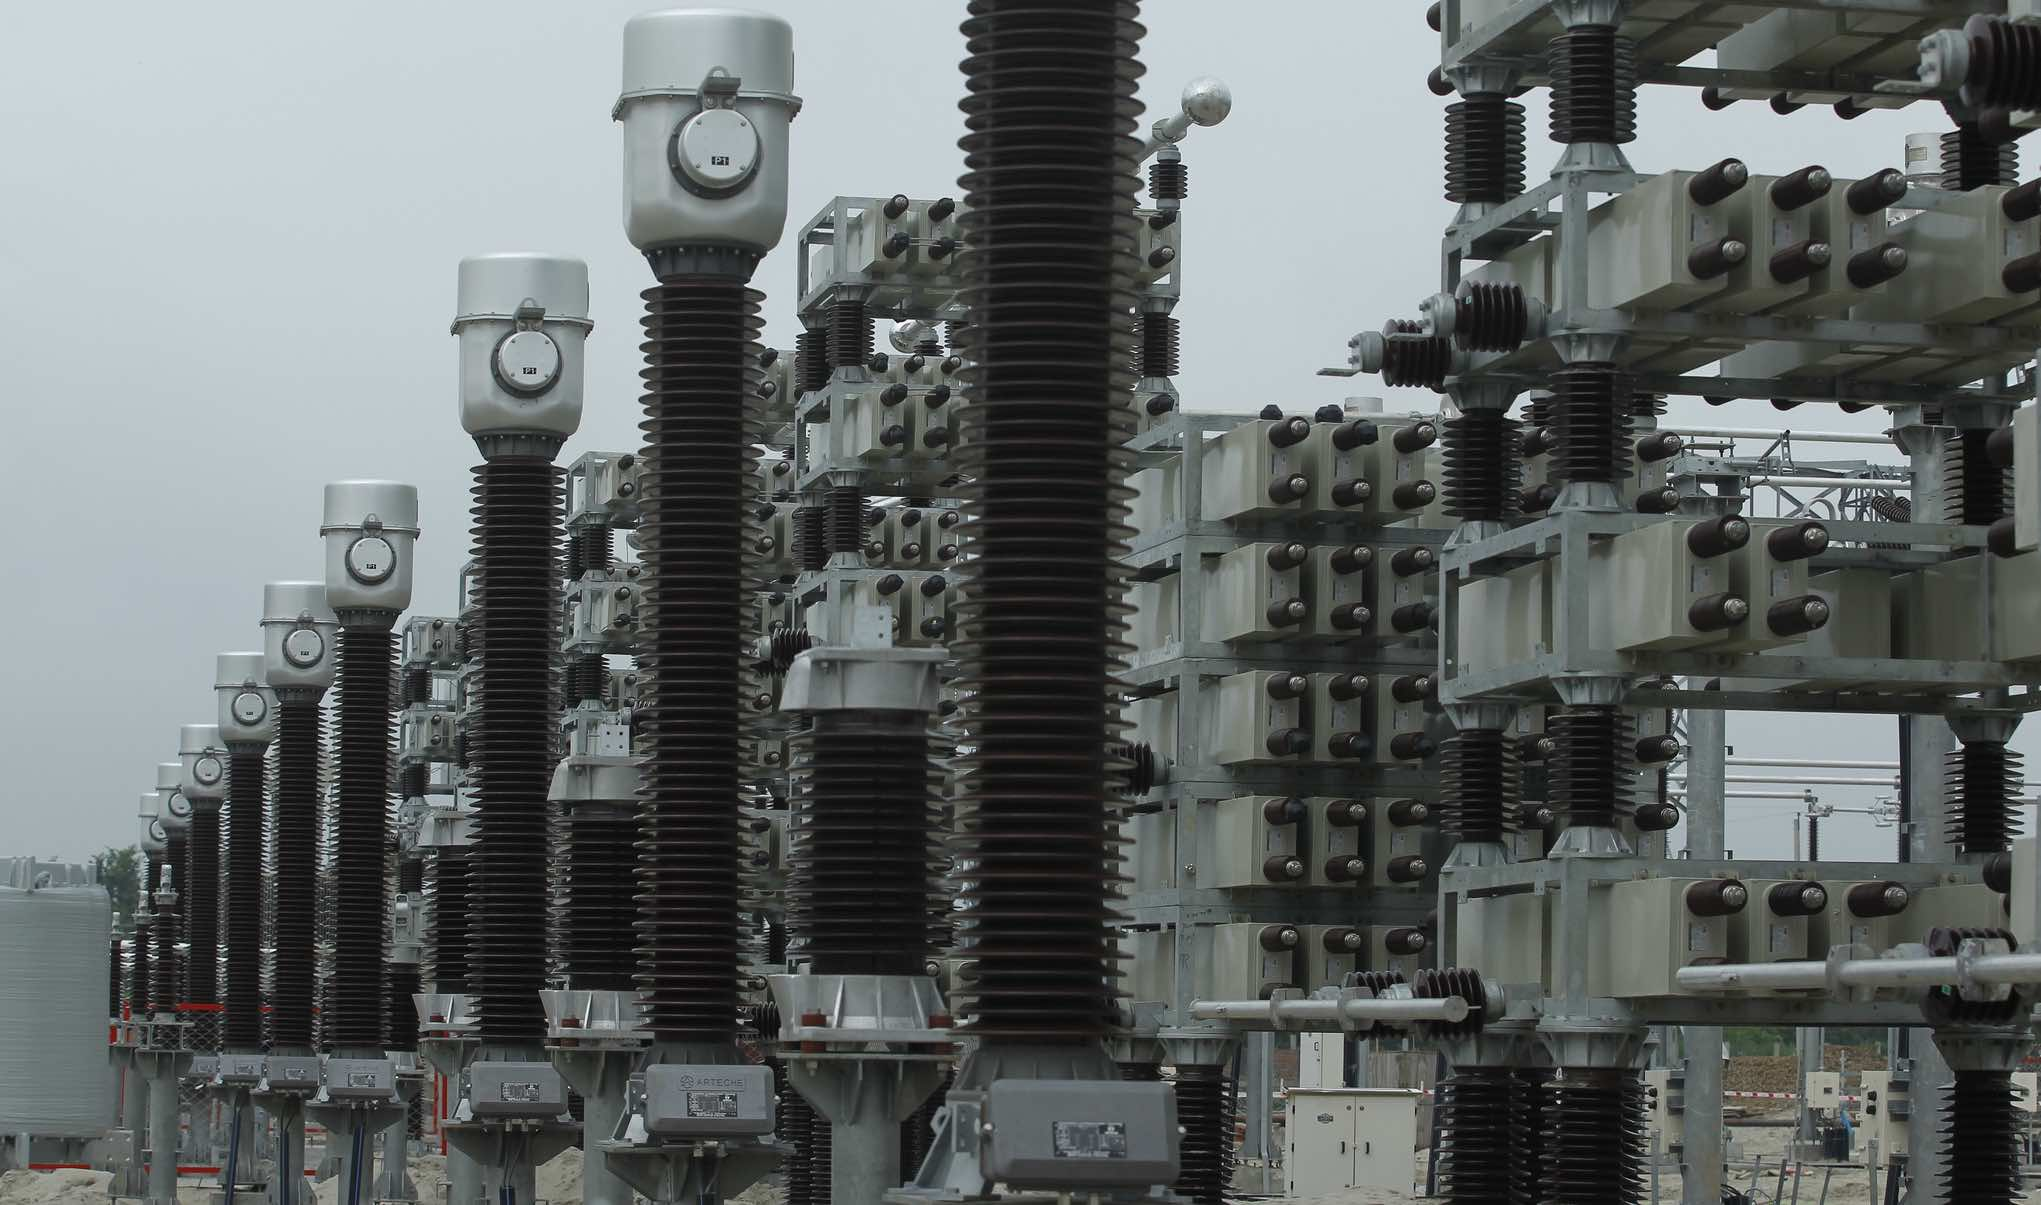 Electricity pylons in Bangladesh (Photo: Asian Development Bank/Flickr)